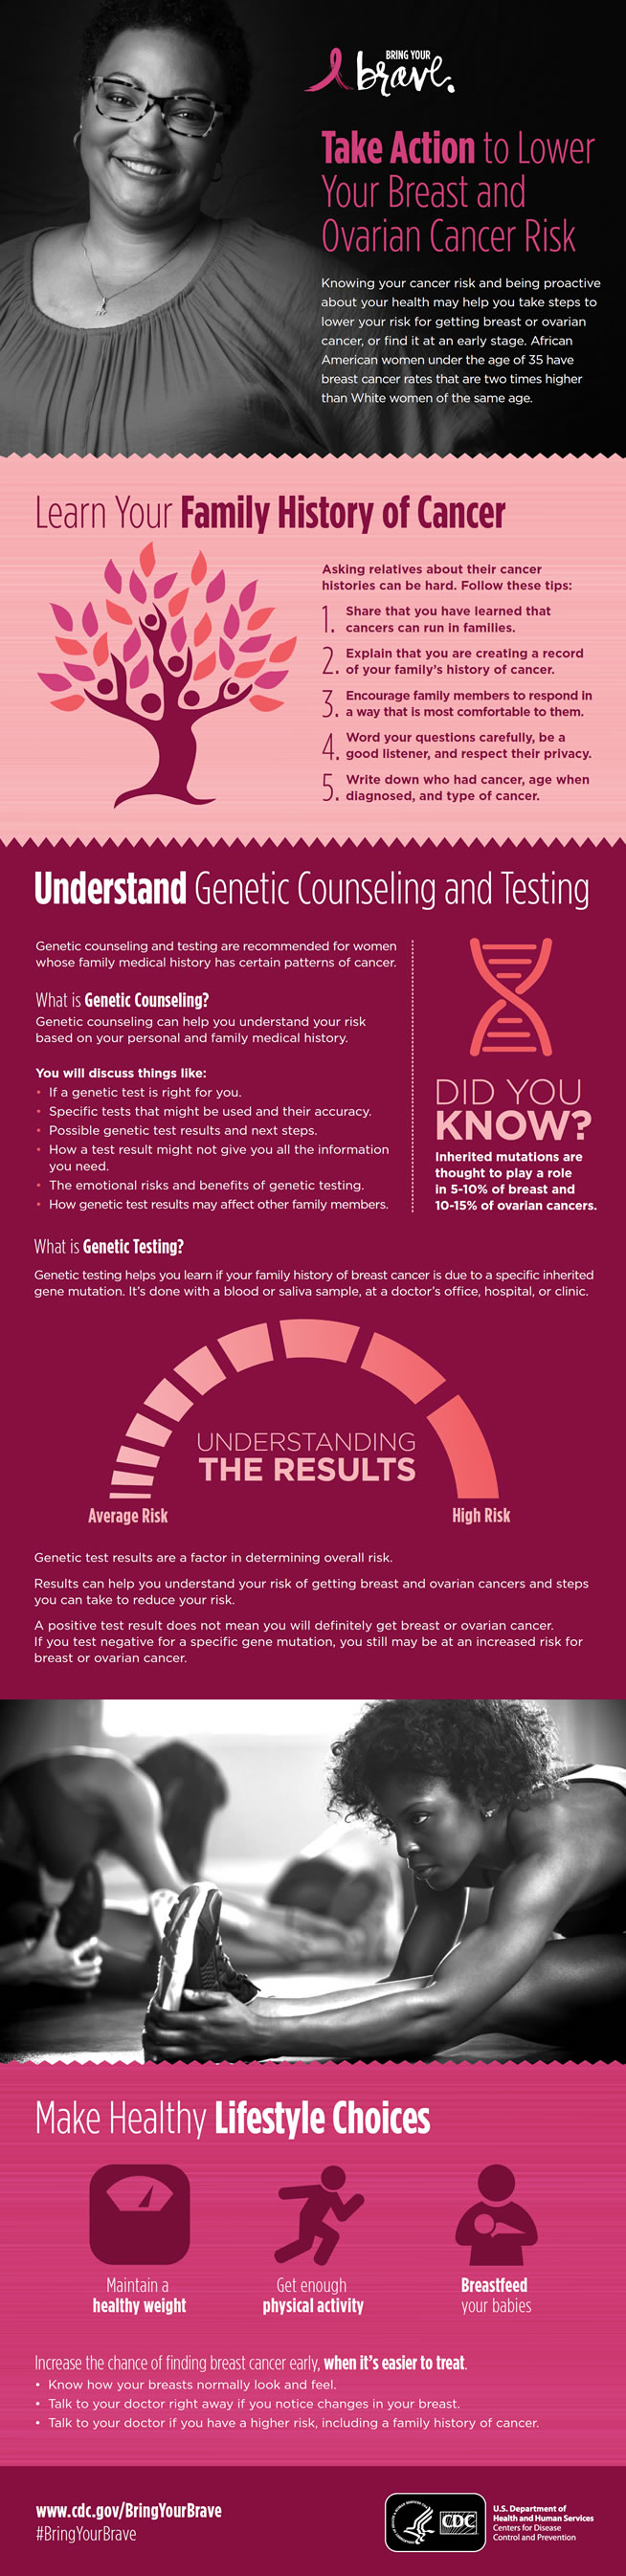 takeaction_infographic_africanamerican